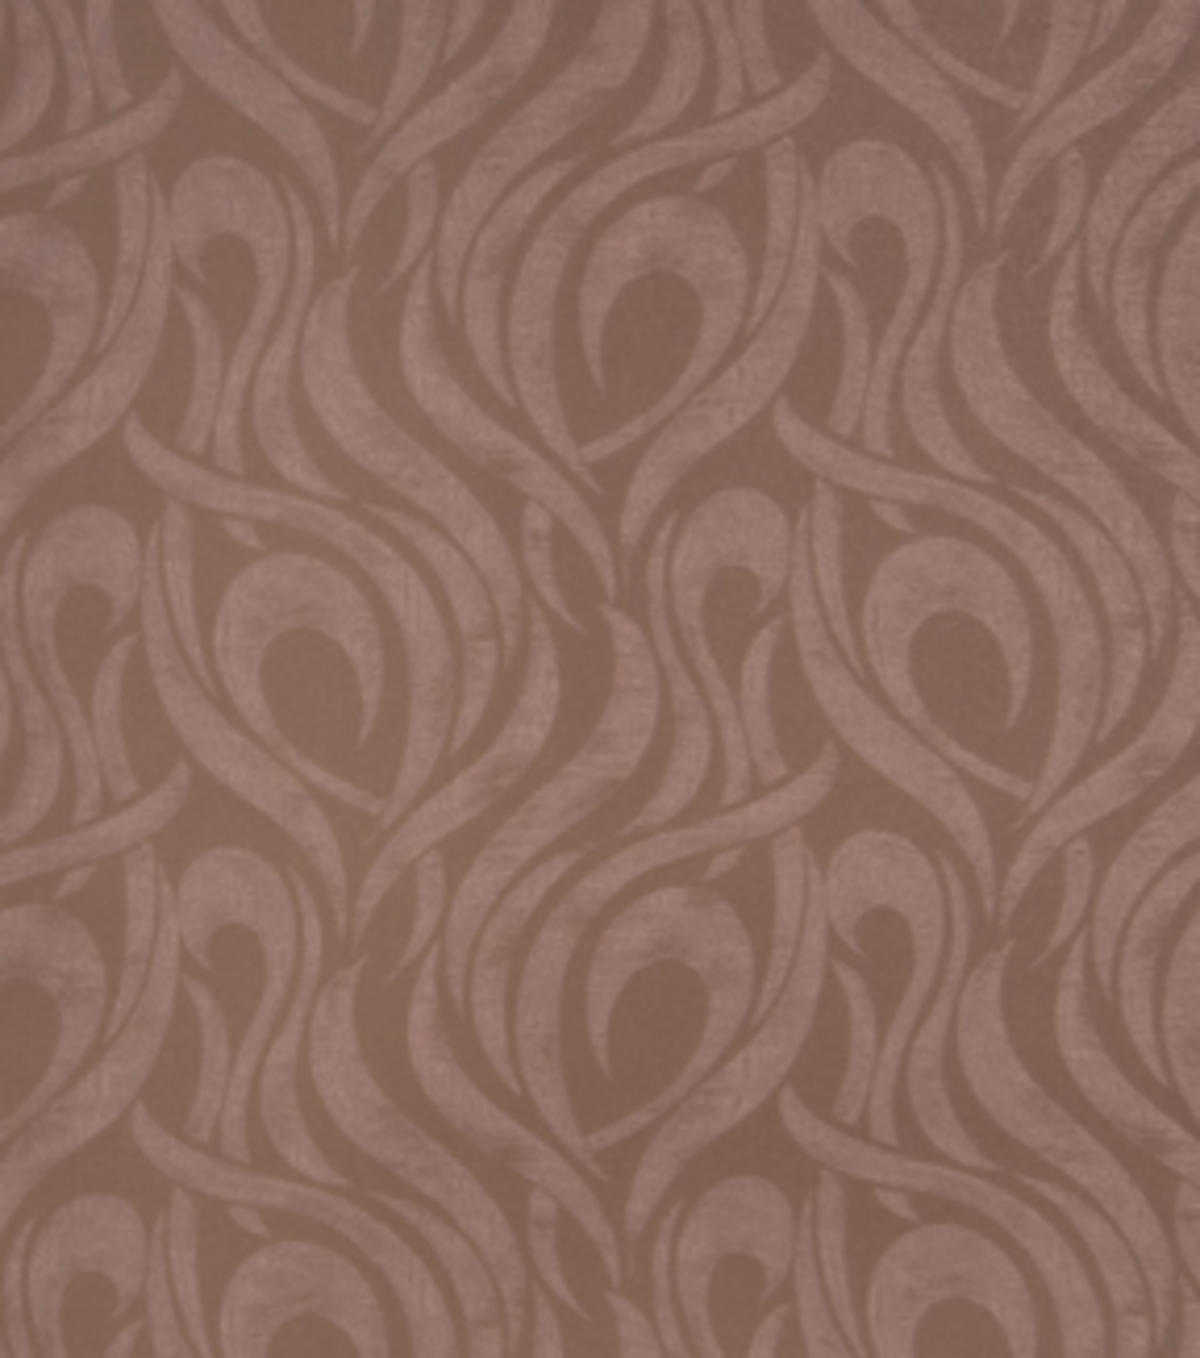 Home Decor 8\u0022x8\u0022 Fabric Swatch-Eaton Square Eisenhower Boudoir